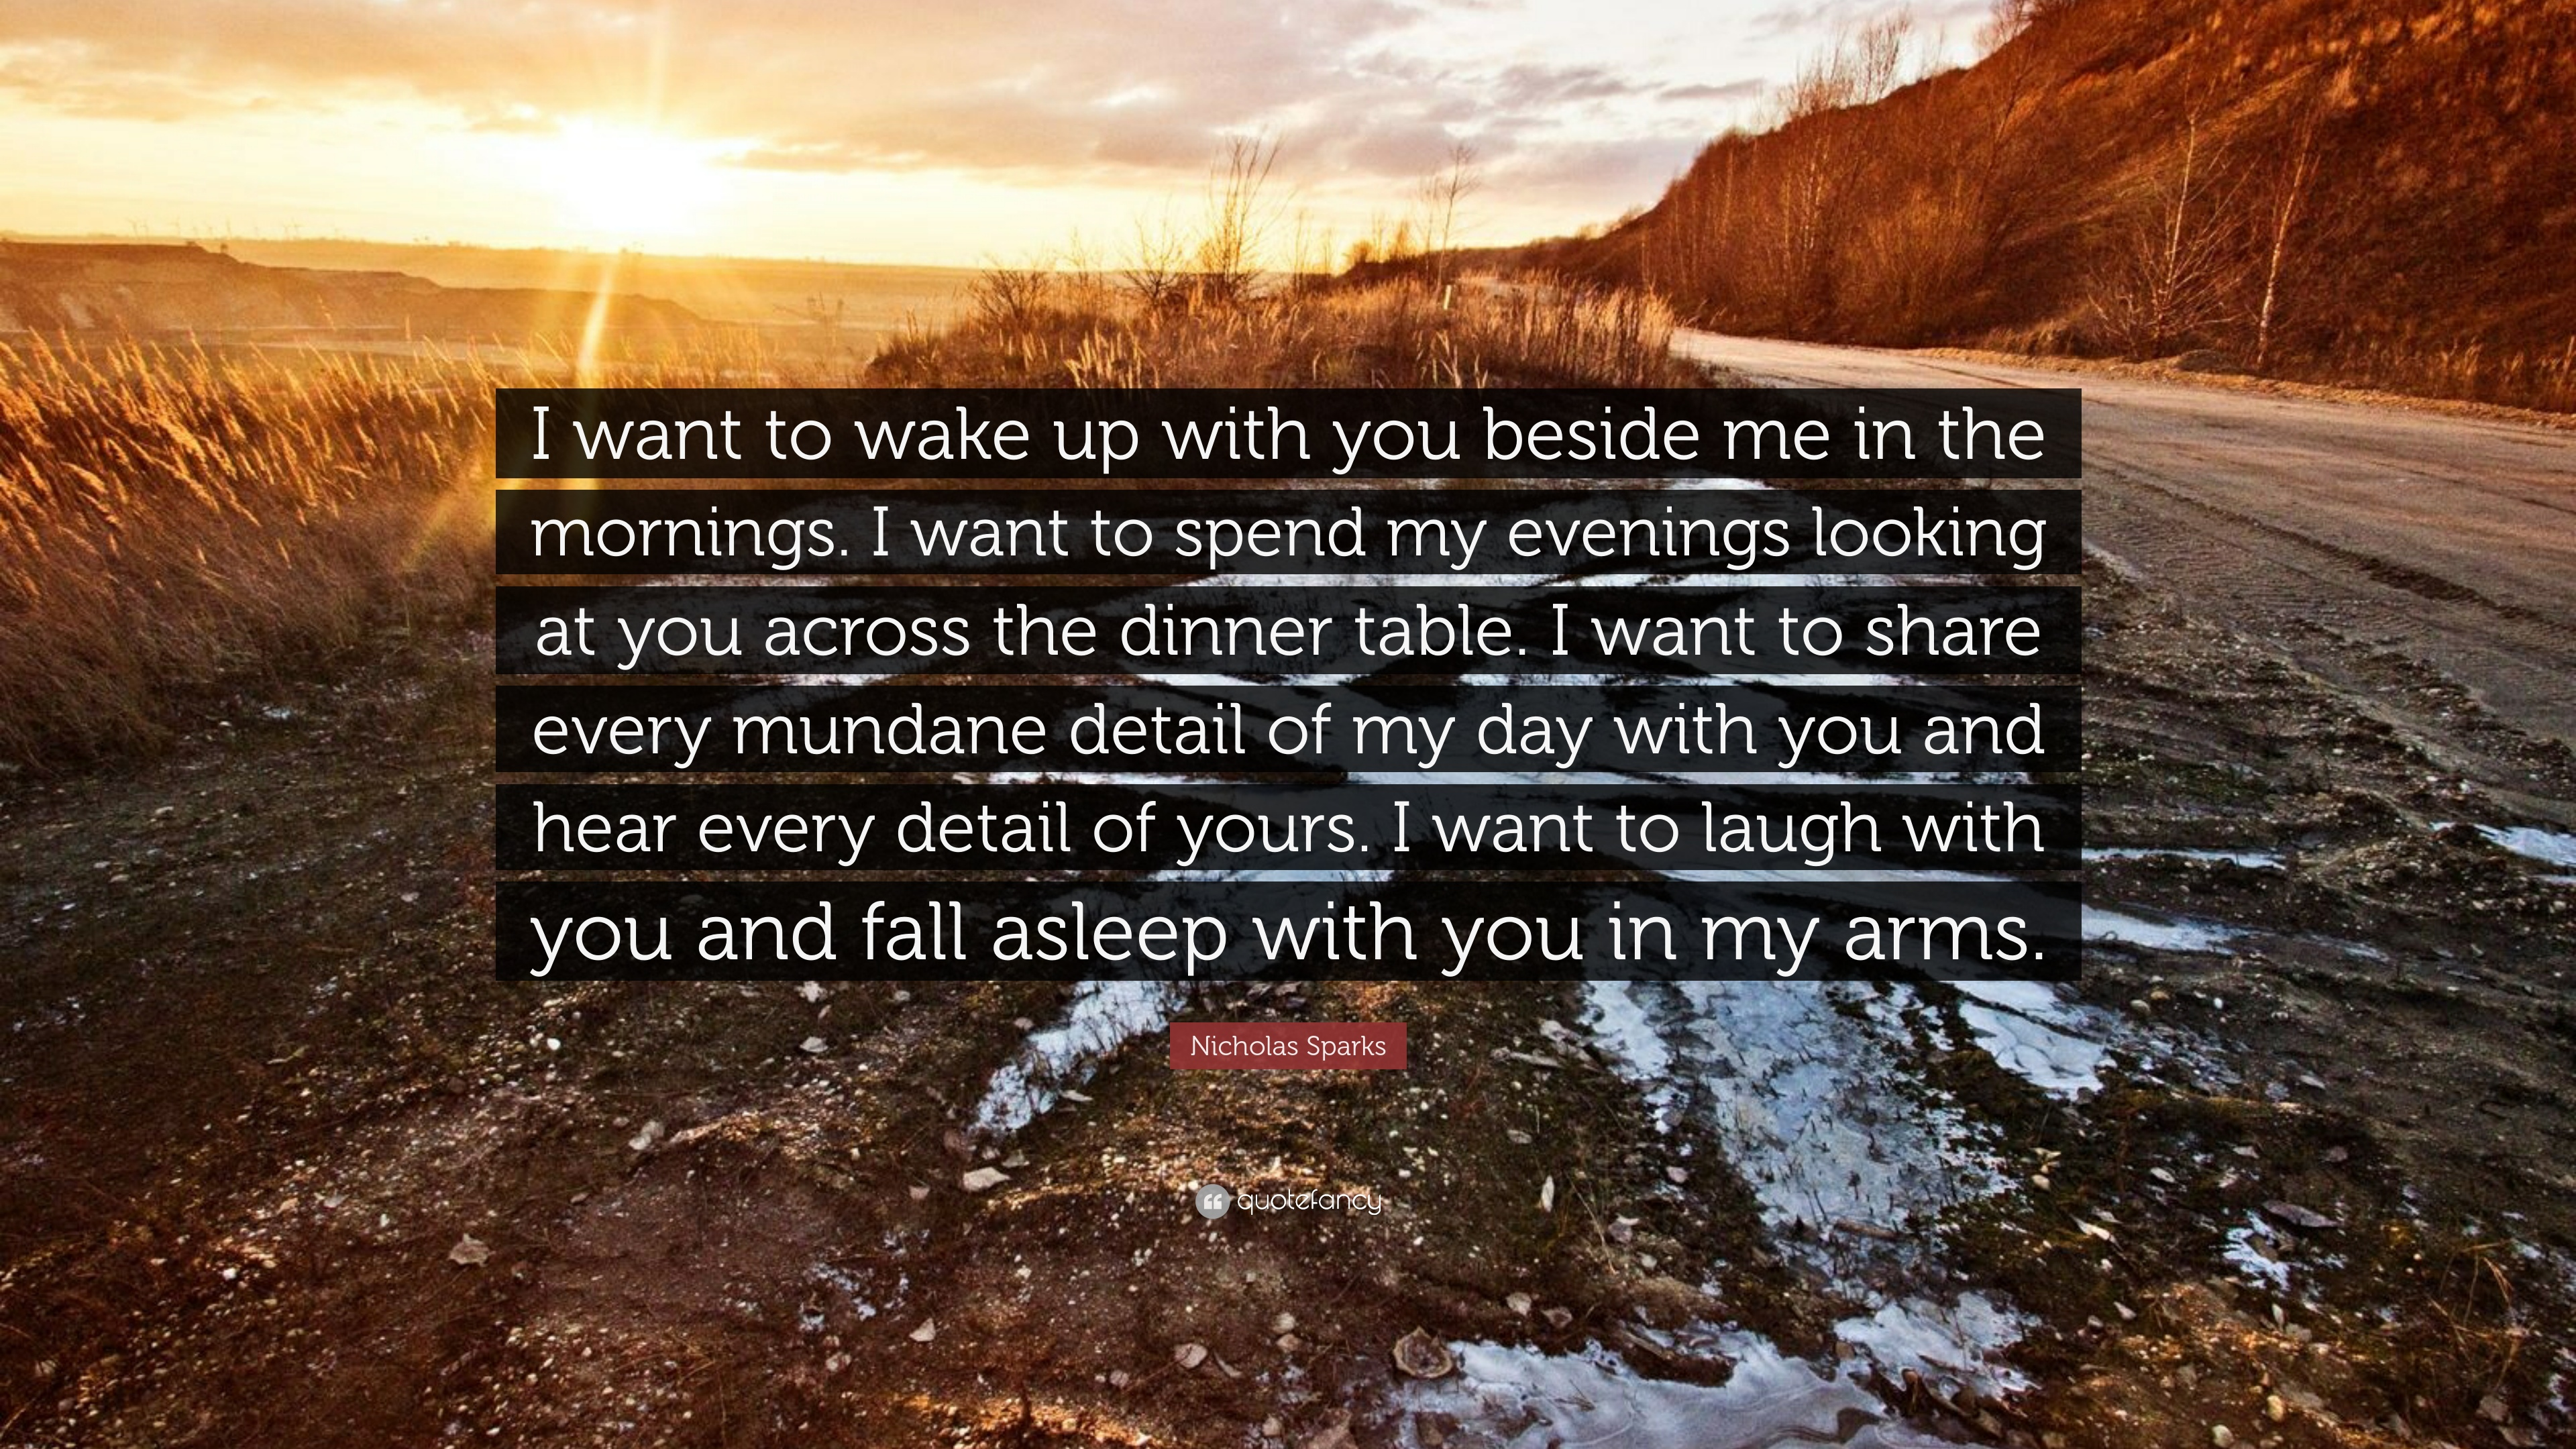 Nicholas Sparks Quote I Want To Wake Up With You Beside Me In The